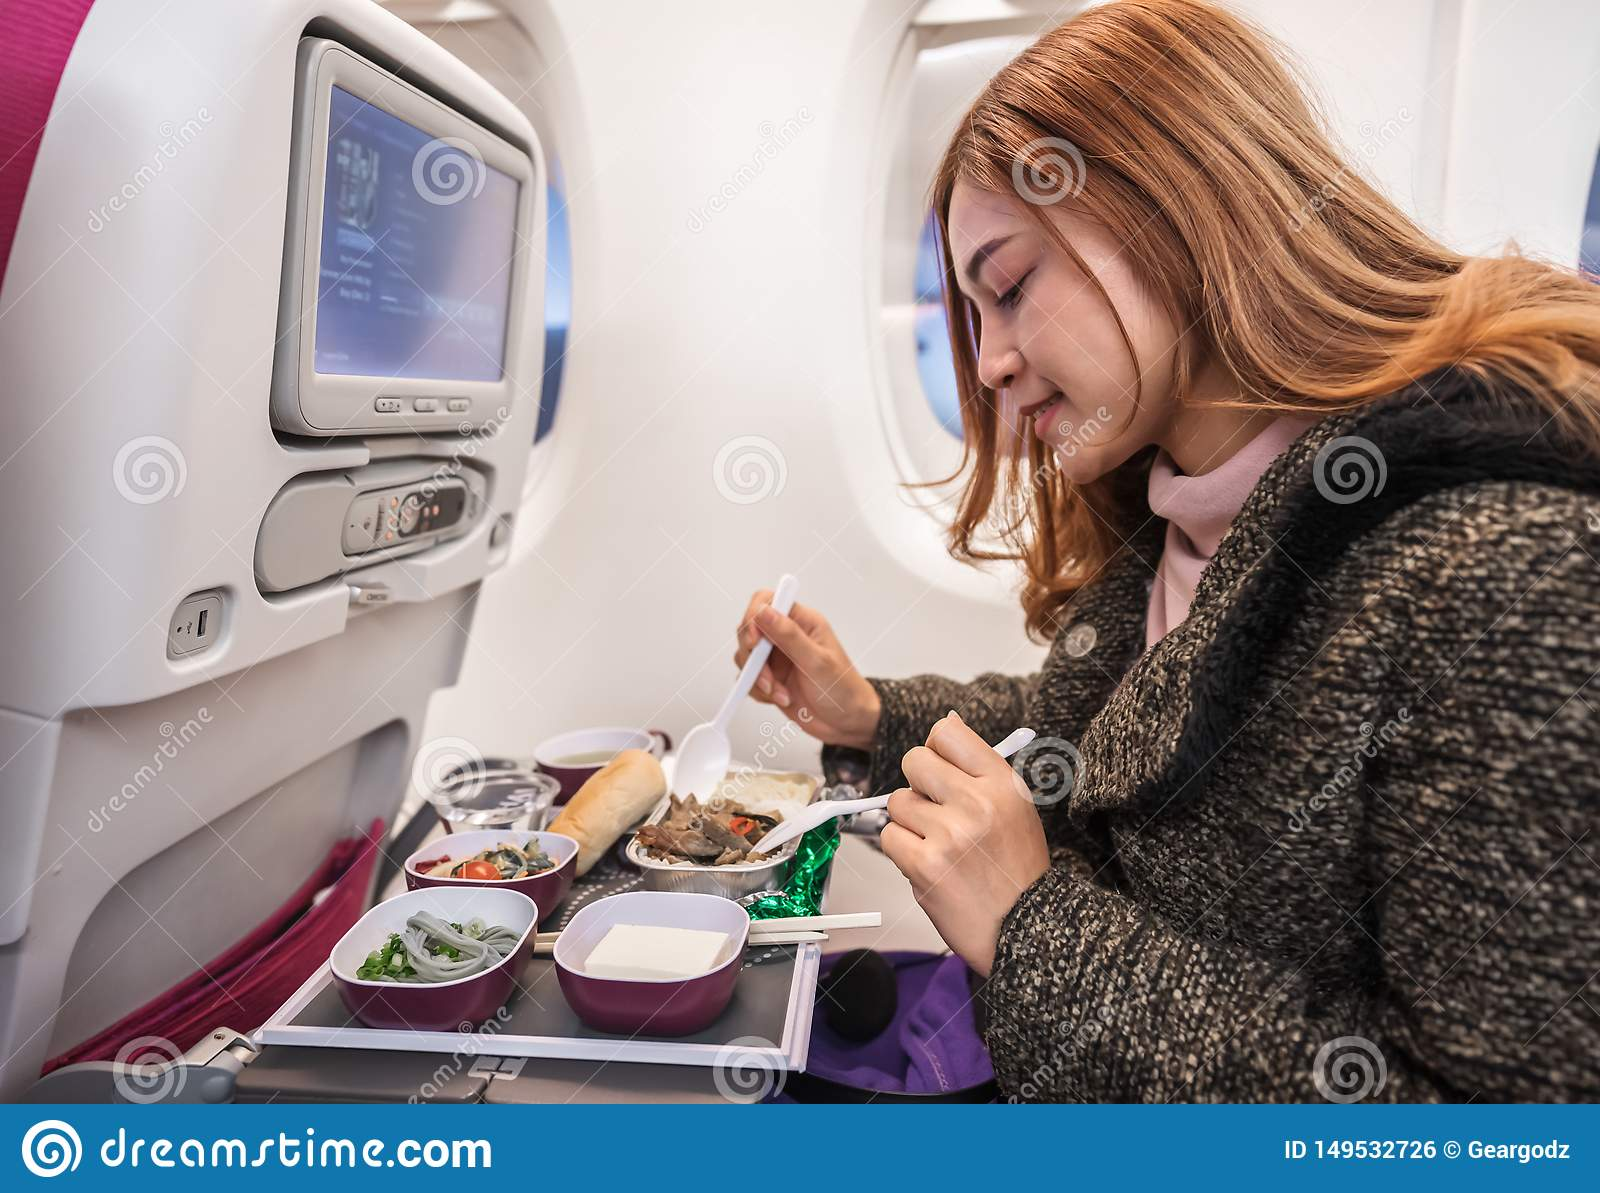 Woman eating meal on commercial airplane in flight time